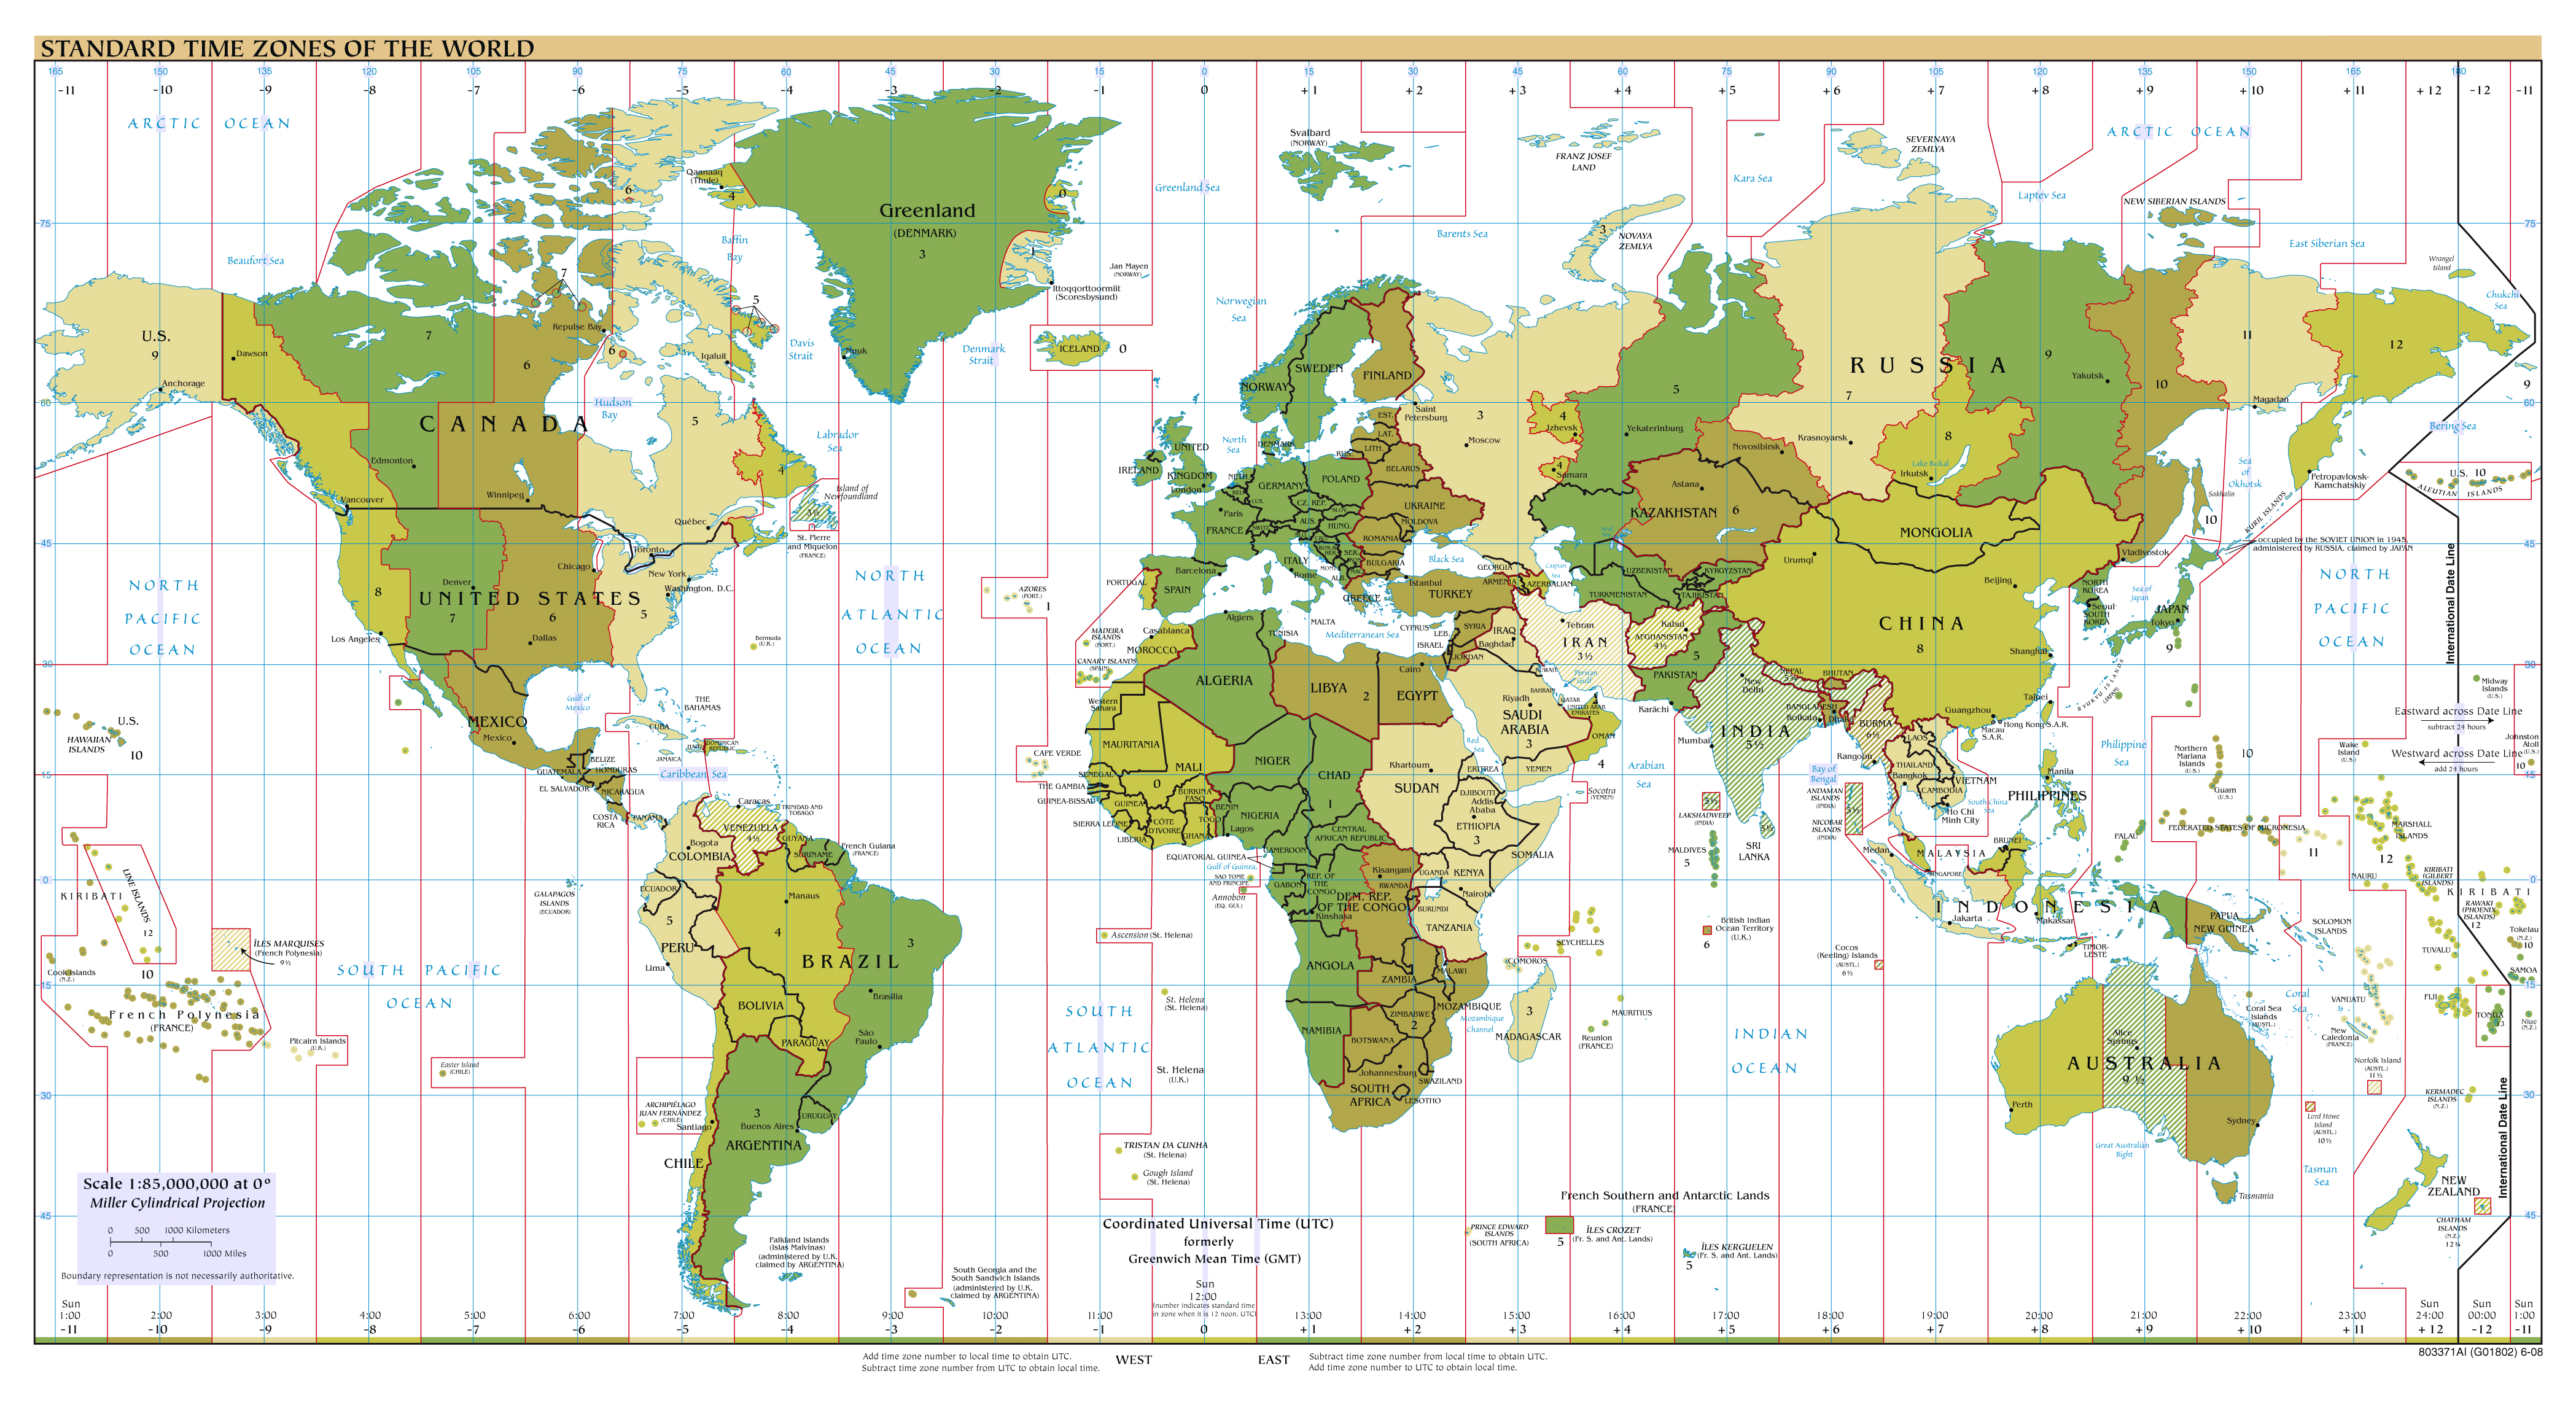 Large scale Time Zones map of the World 2008 Maps of all co